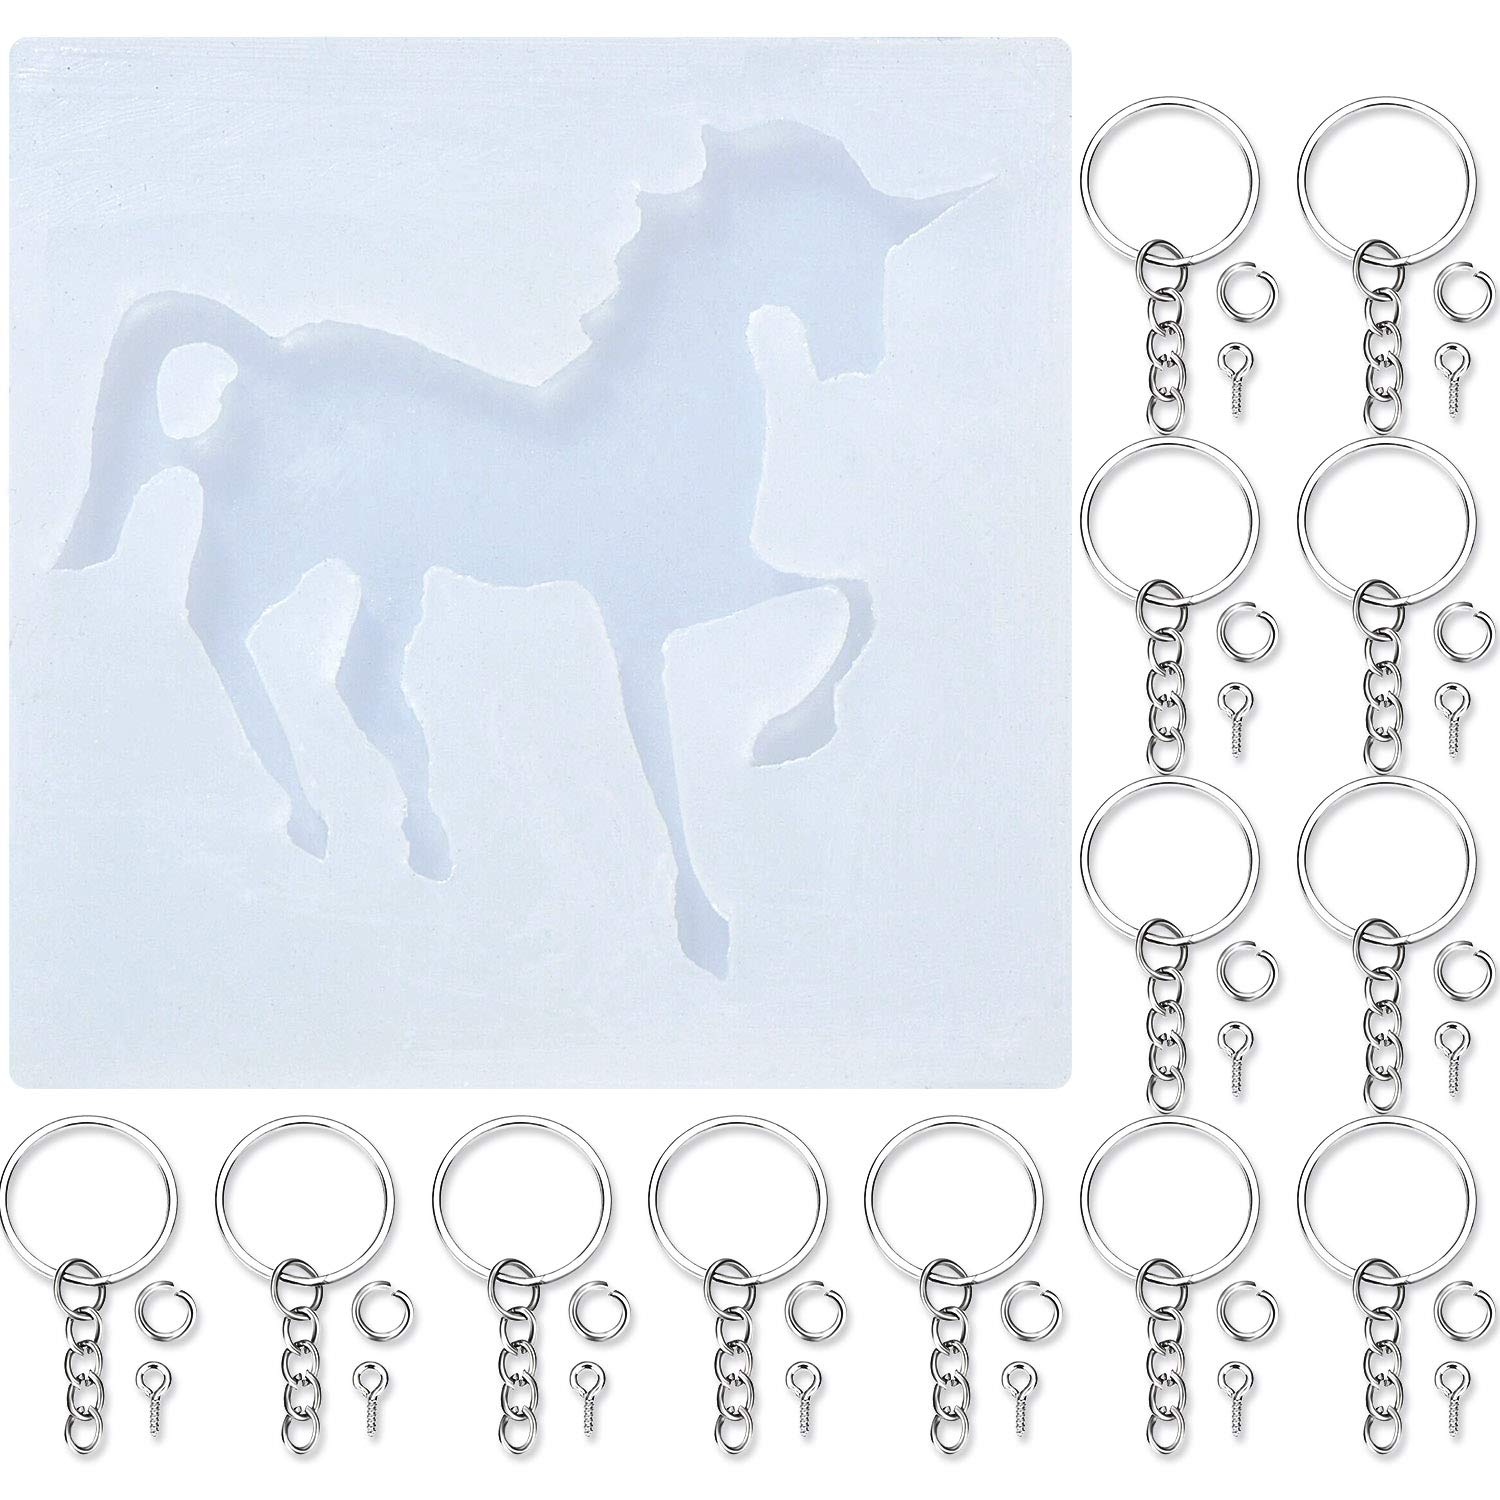 TecUnite Unicorn-Shaped Resin Casting Mold Silicone Jewelry Mold with 30 Pieces Key Chain Rings and 30 Pieces Screw Eye Pins